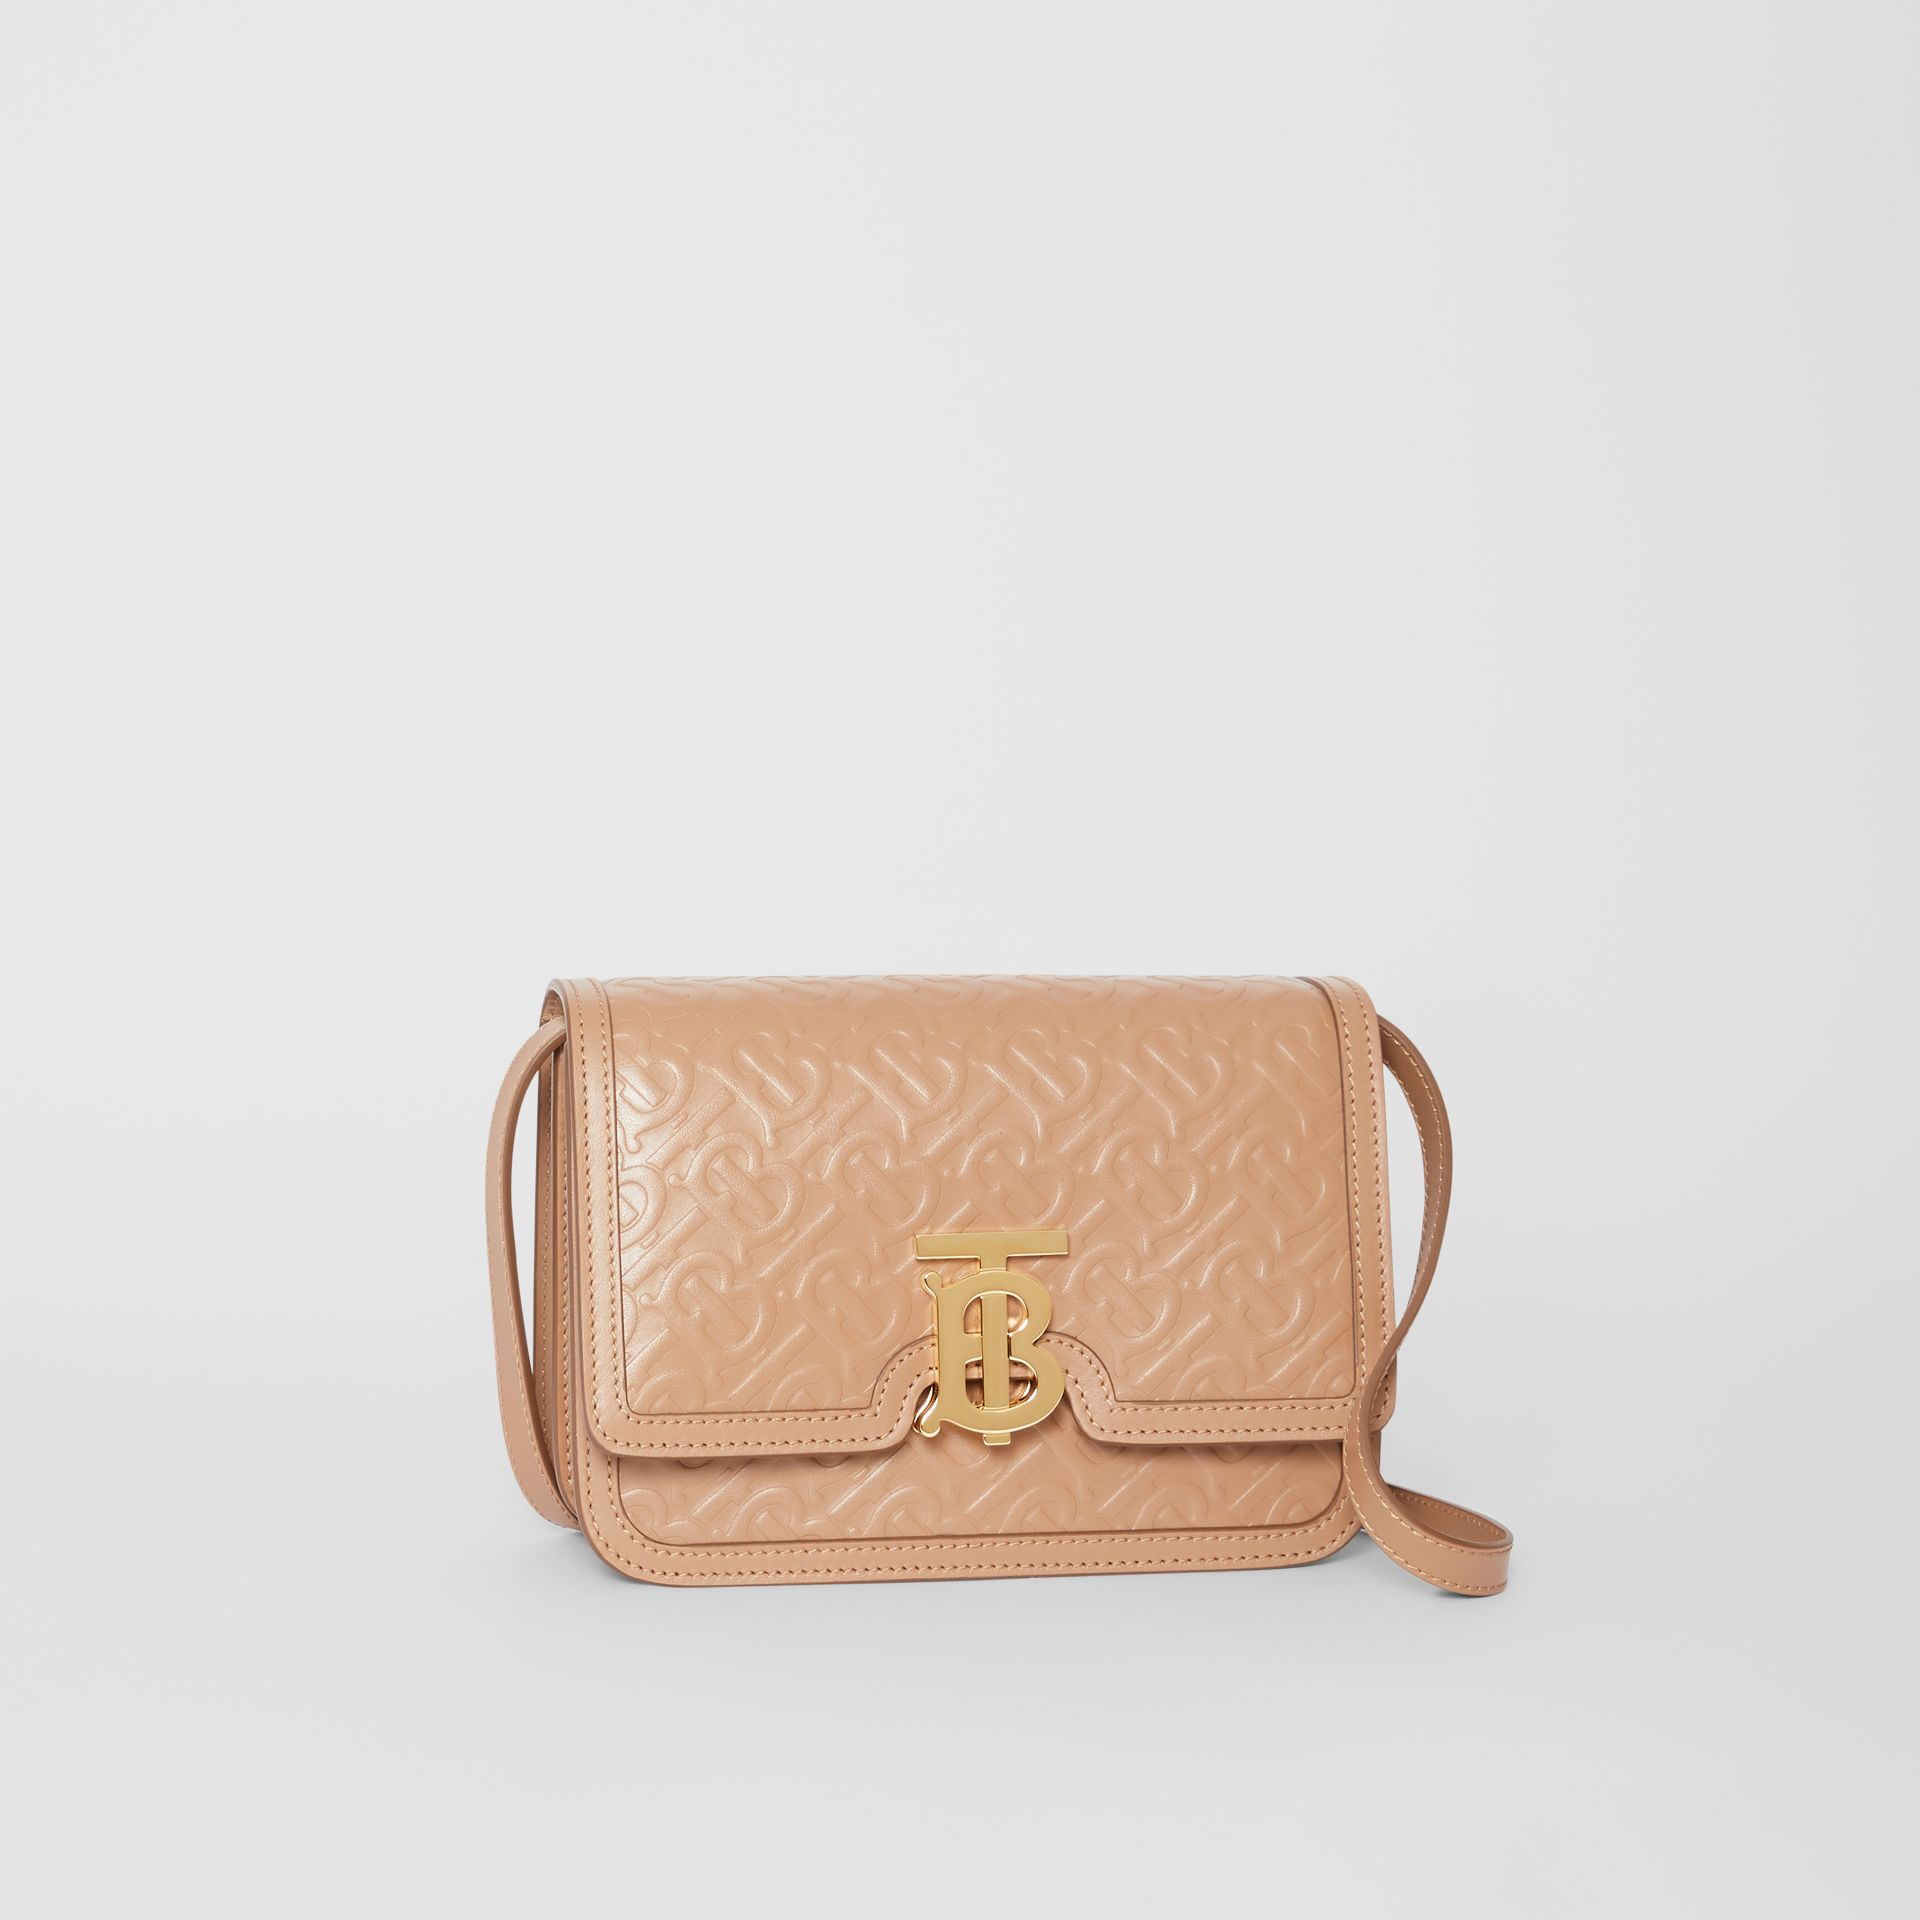 Small Monogram Leather TB Bag in Light Camel - Women | Burberry United Kingdom - gallery image 6